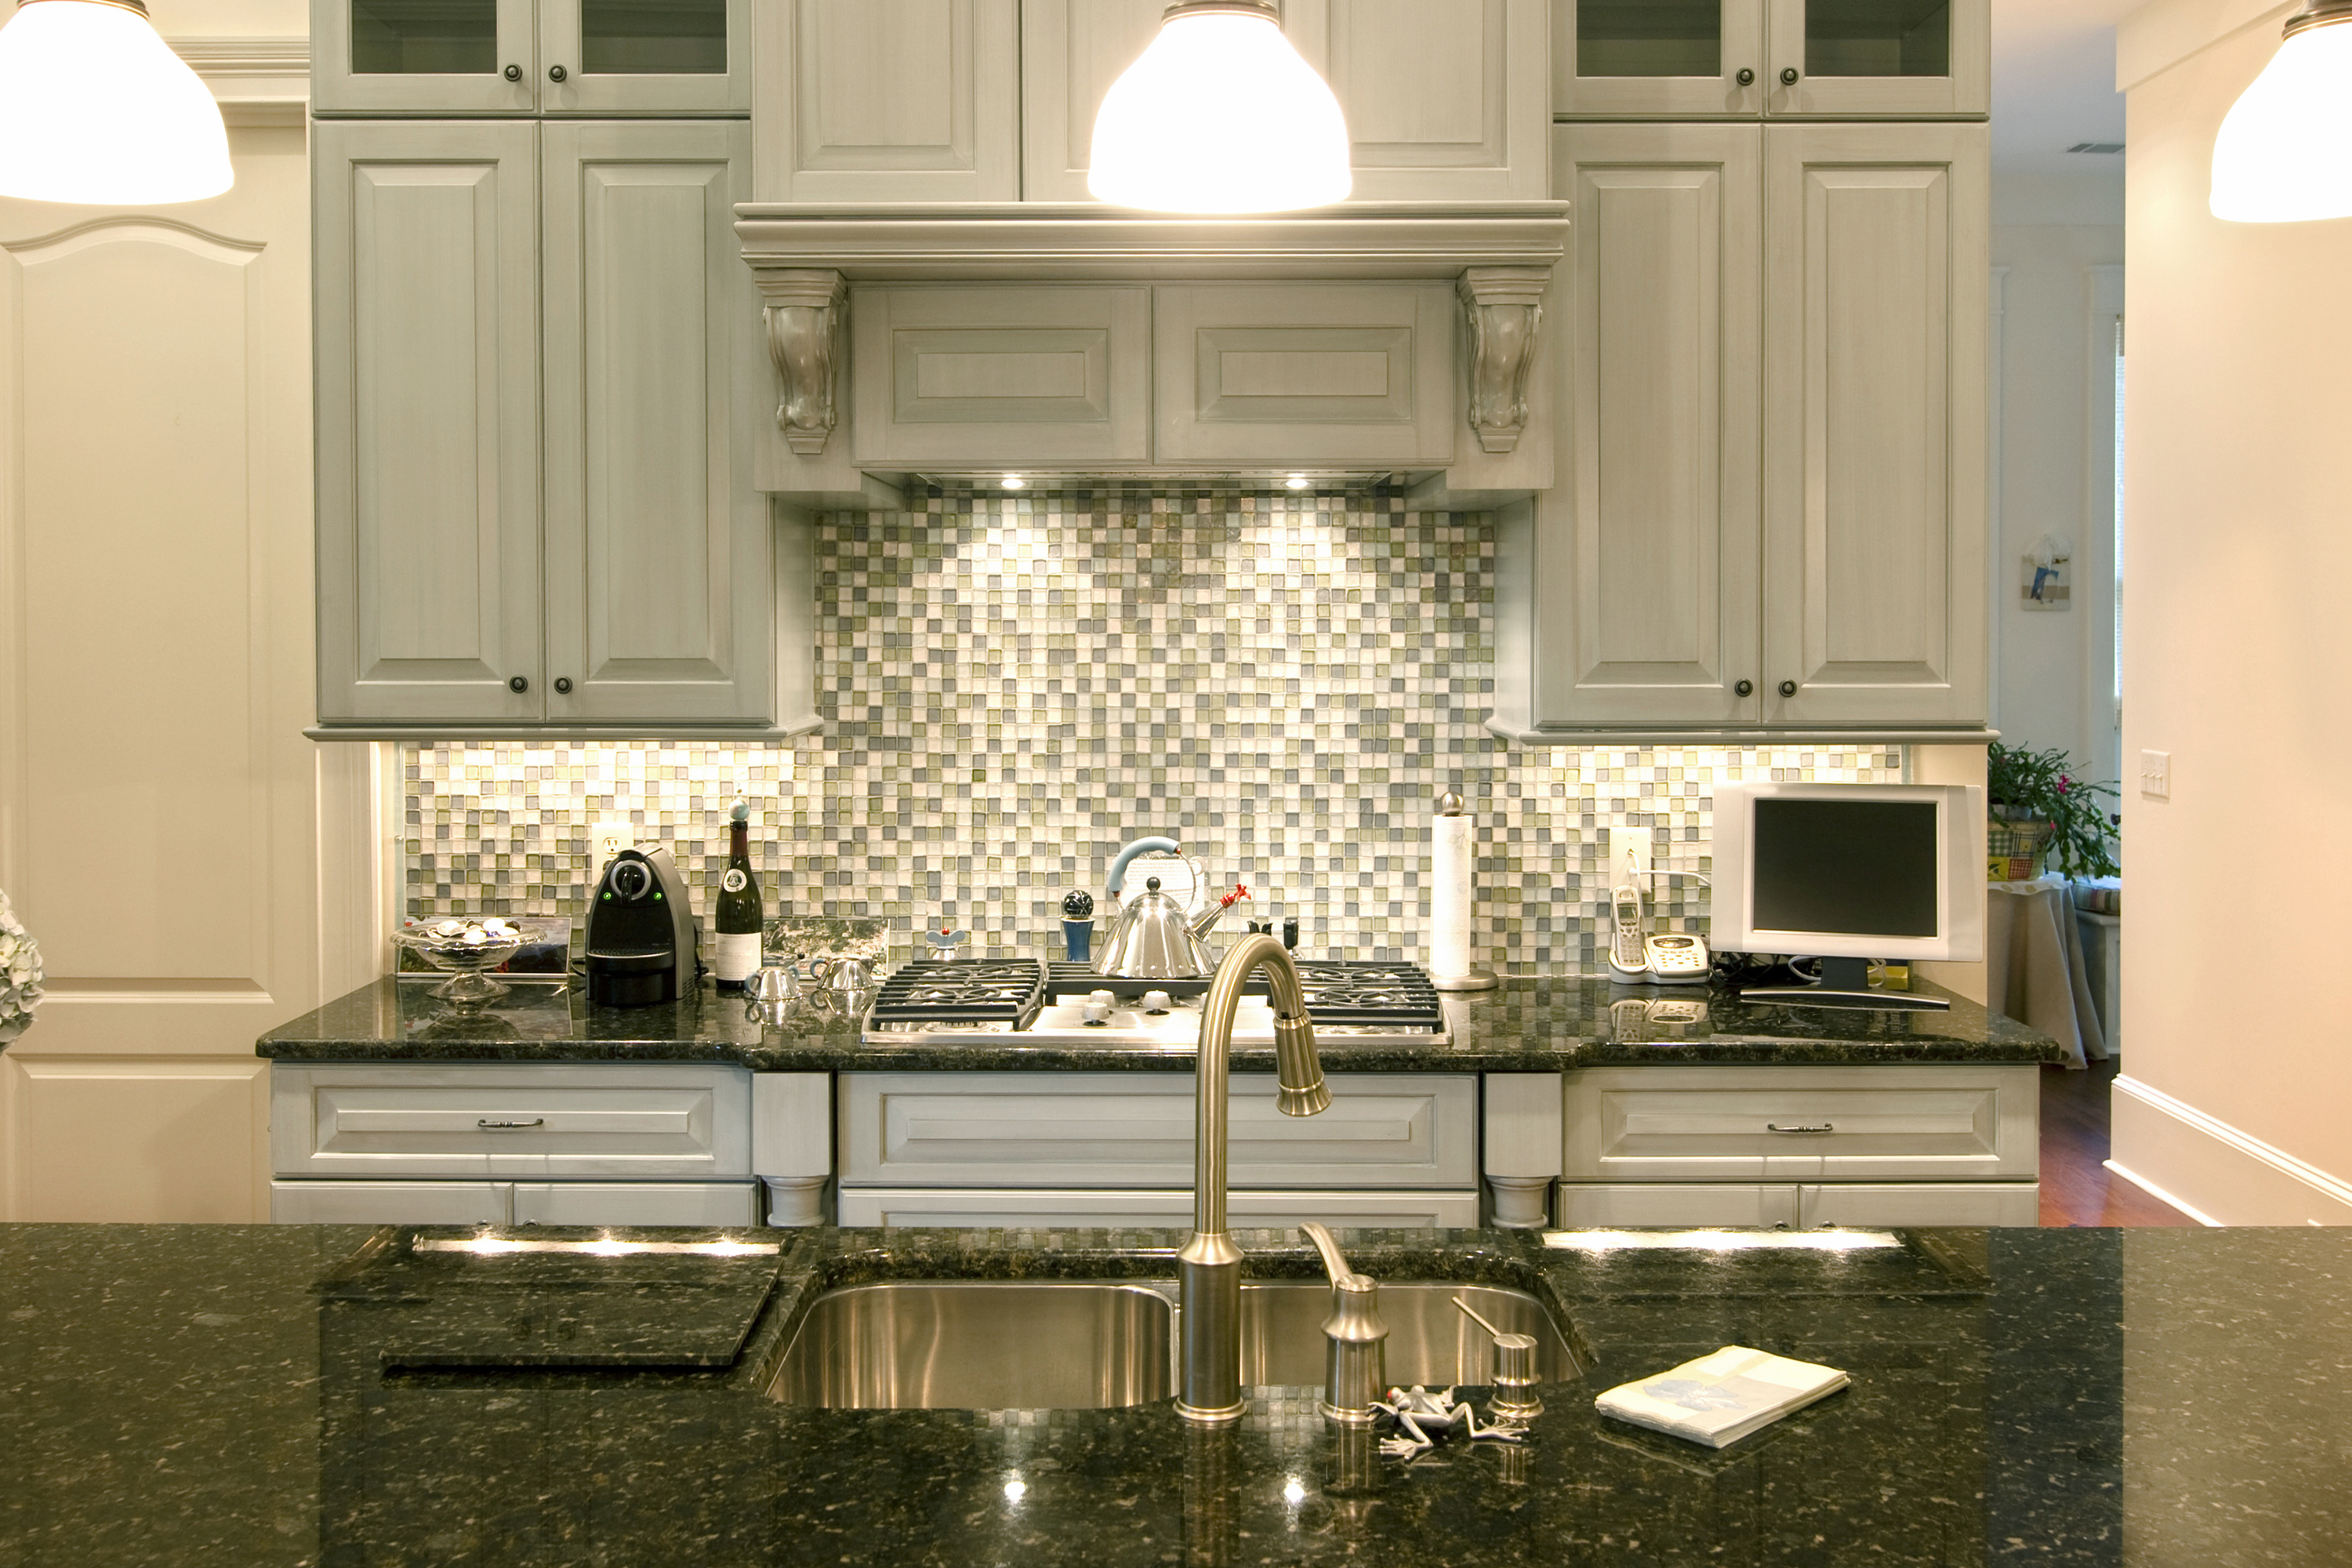 Kitchen Black Granite : The best backsplash ideas for black granite countertops